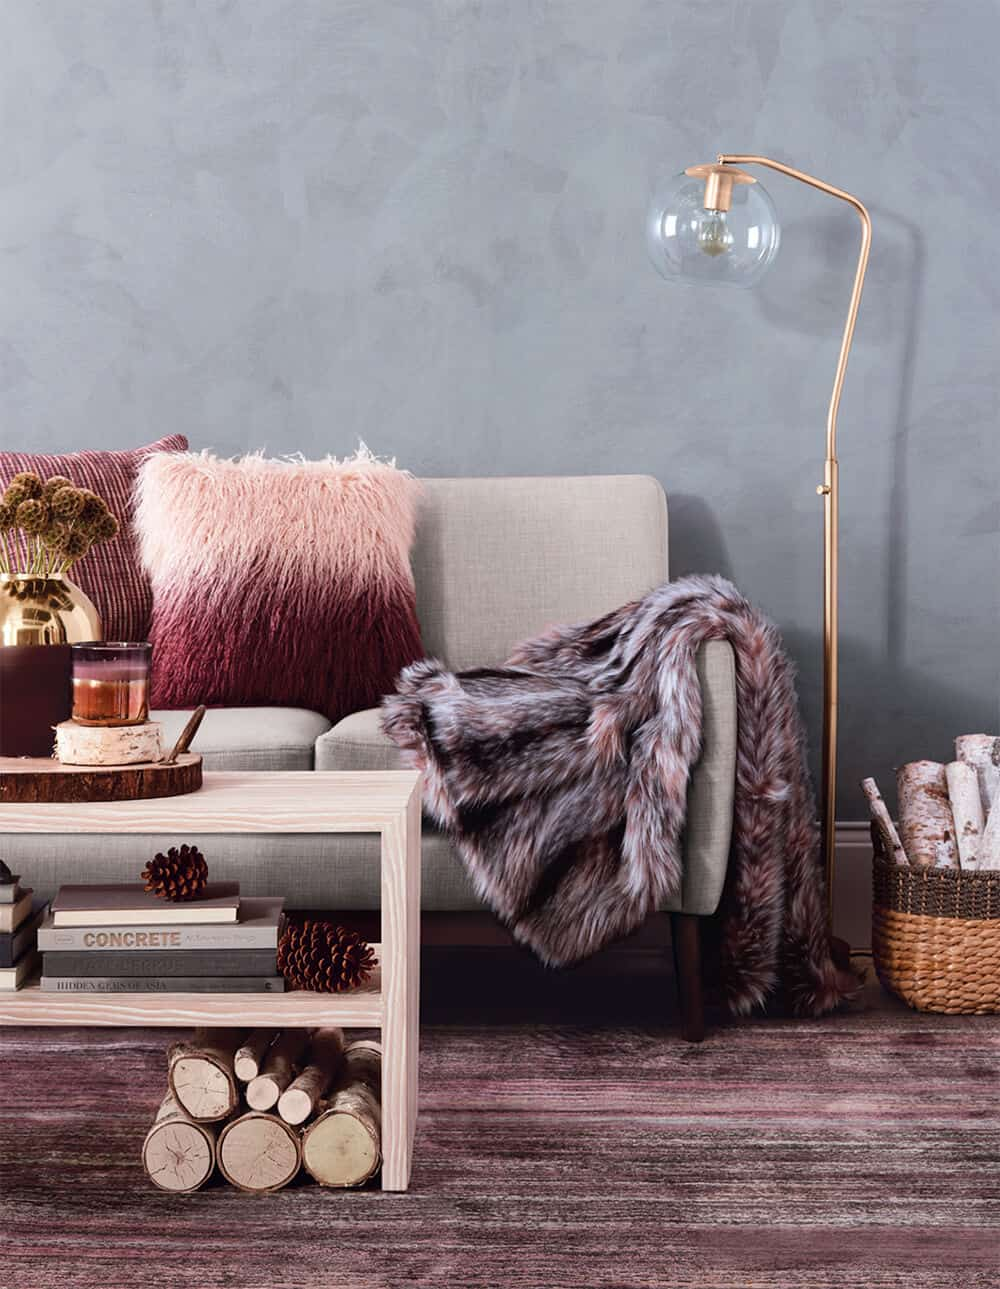 target-fall-style-catalogue-preview-emily-henderson-design-18